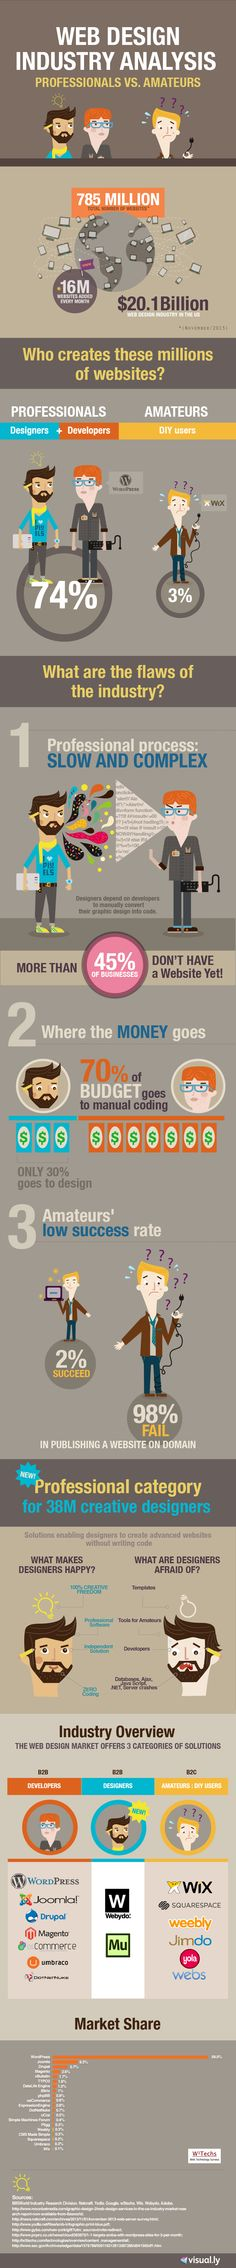 Web design industry analysis #infographic